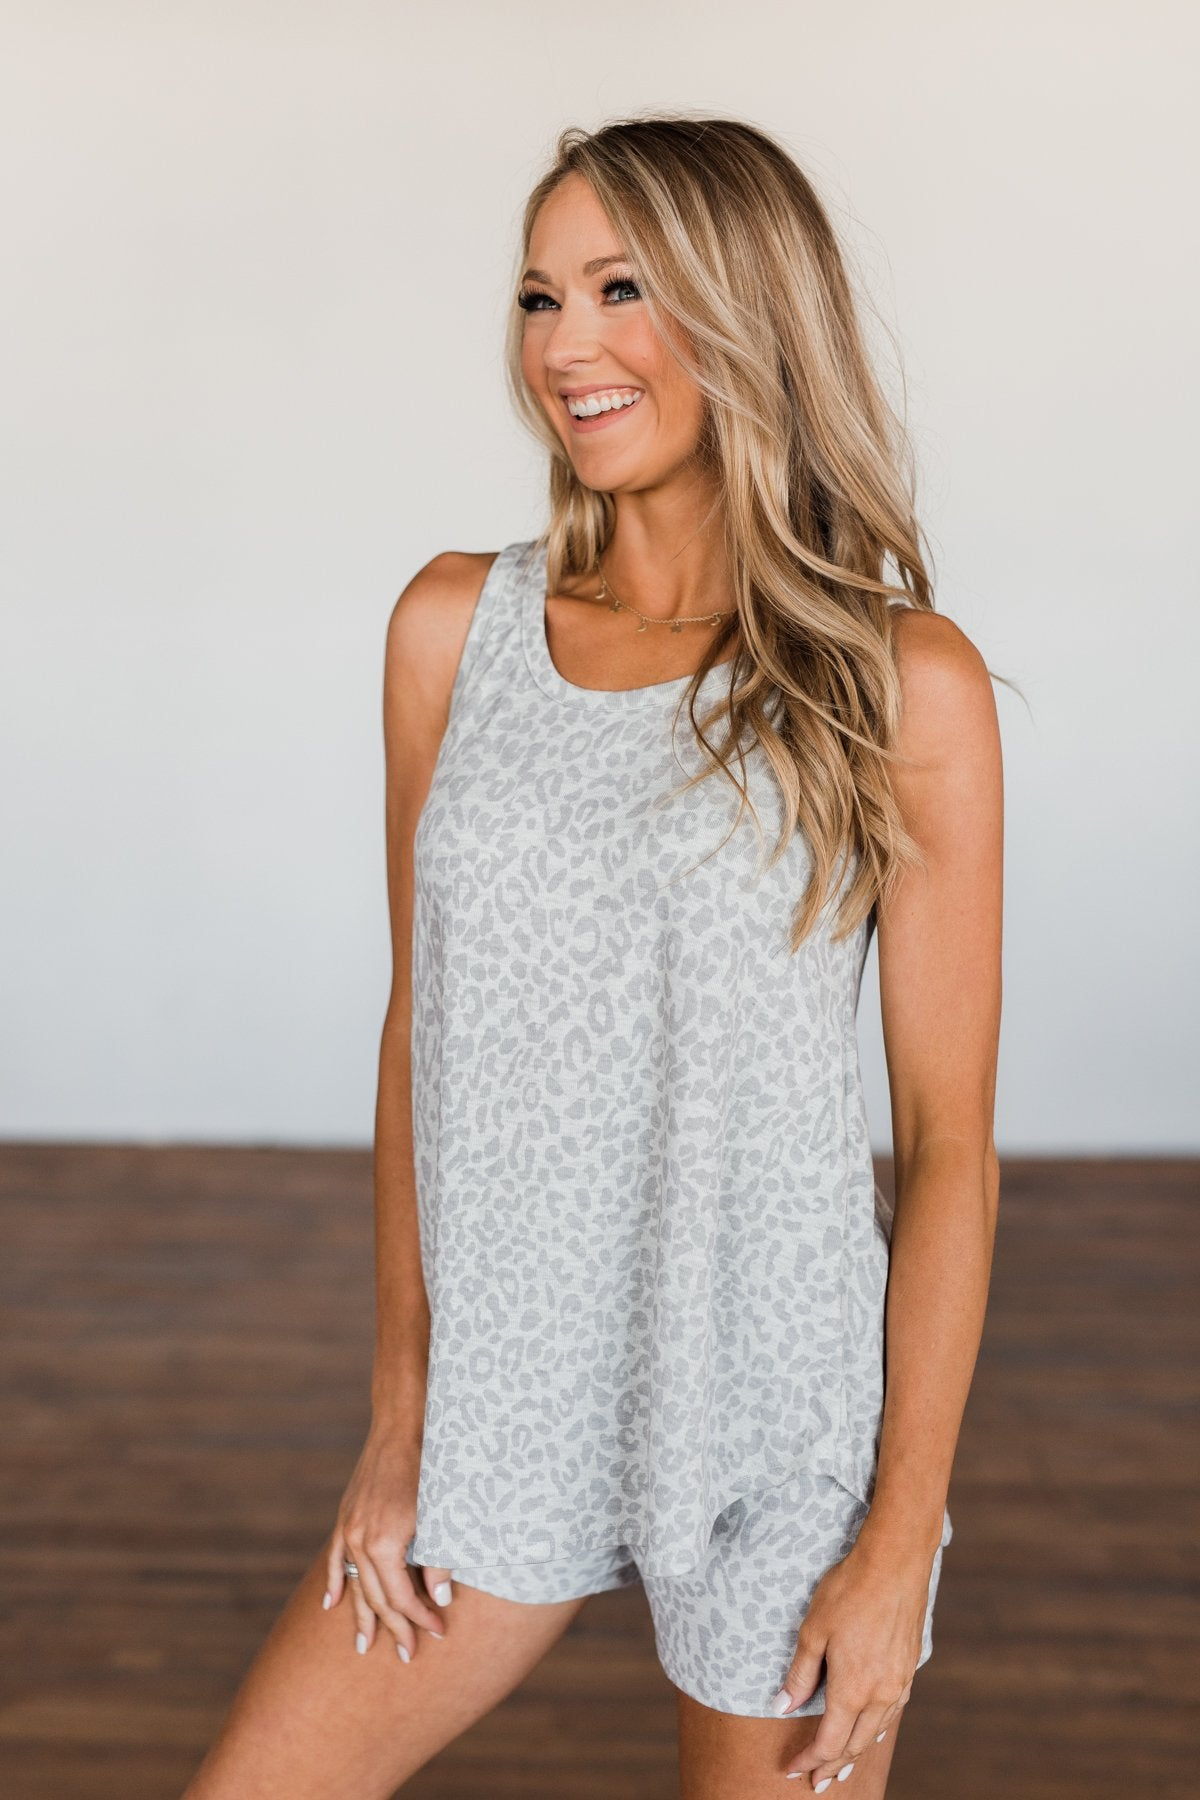 Discover Your Journey Leopard Tank Top- Light Grey